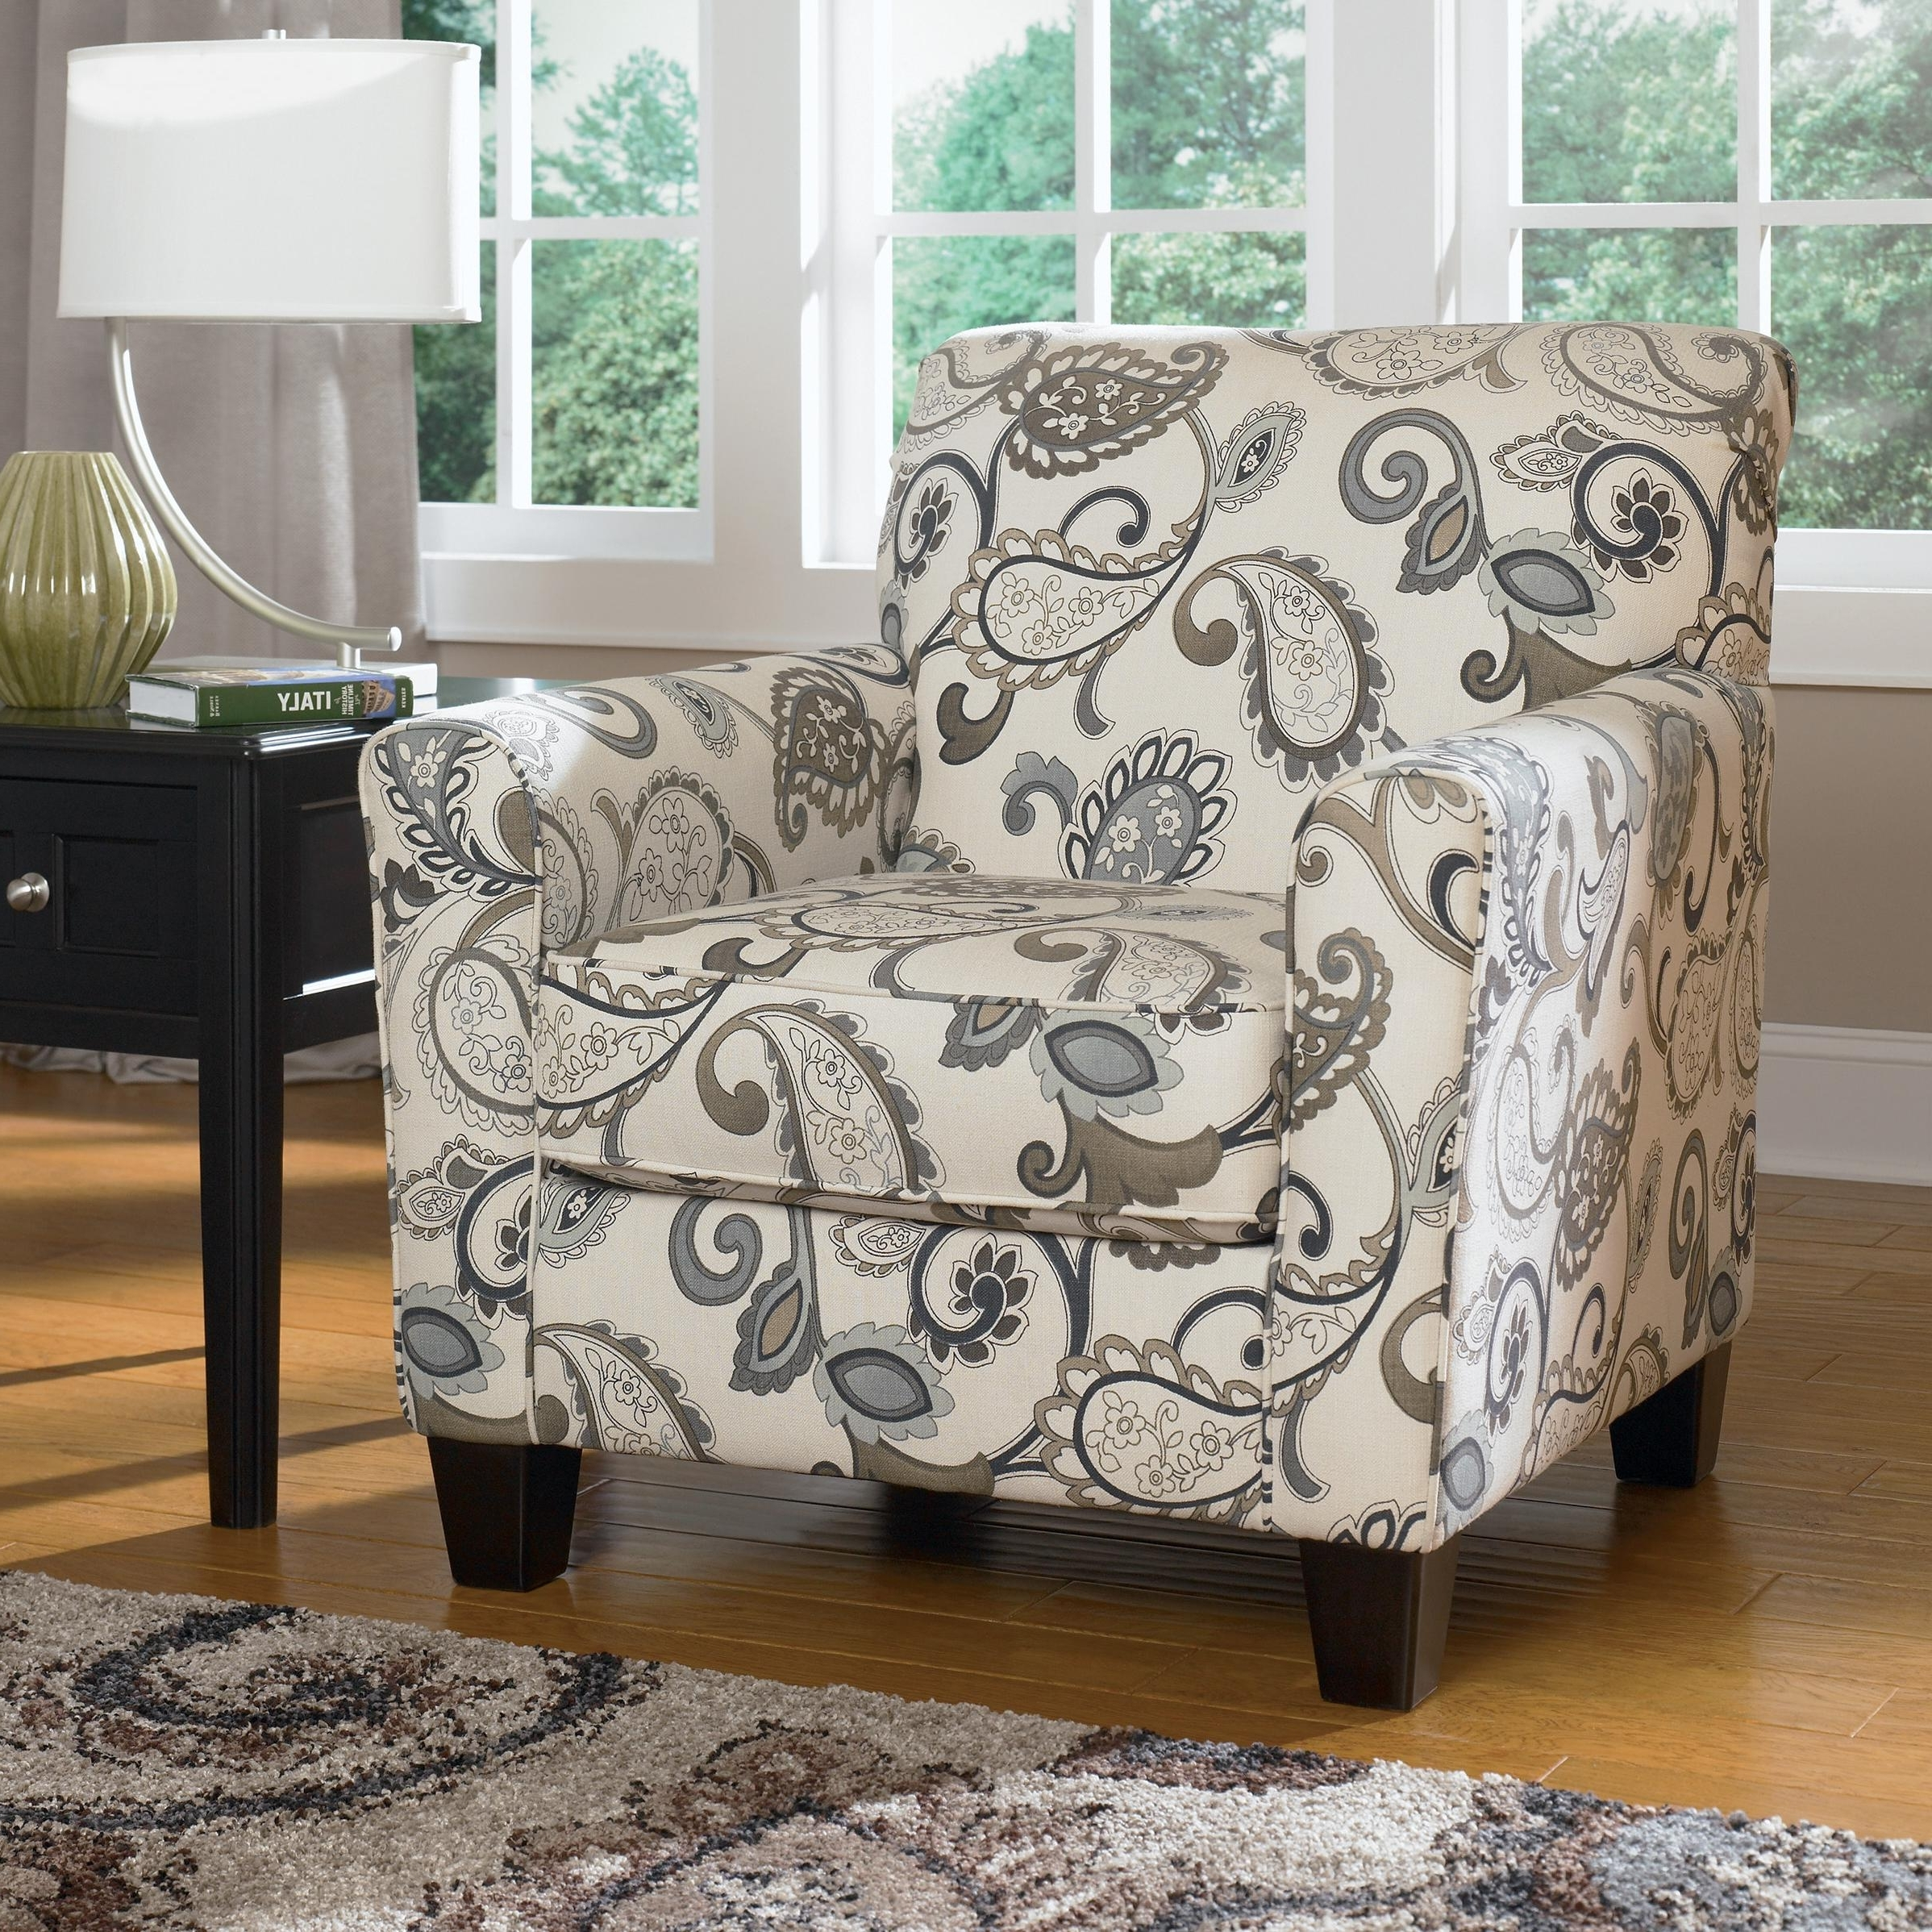 2019 Accent Sofa Chair – Sofa Designs For Accent Sofa Chairs (View 1 of 20)